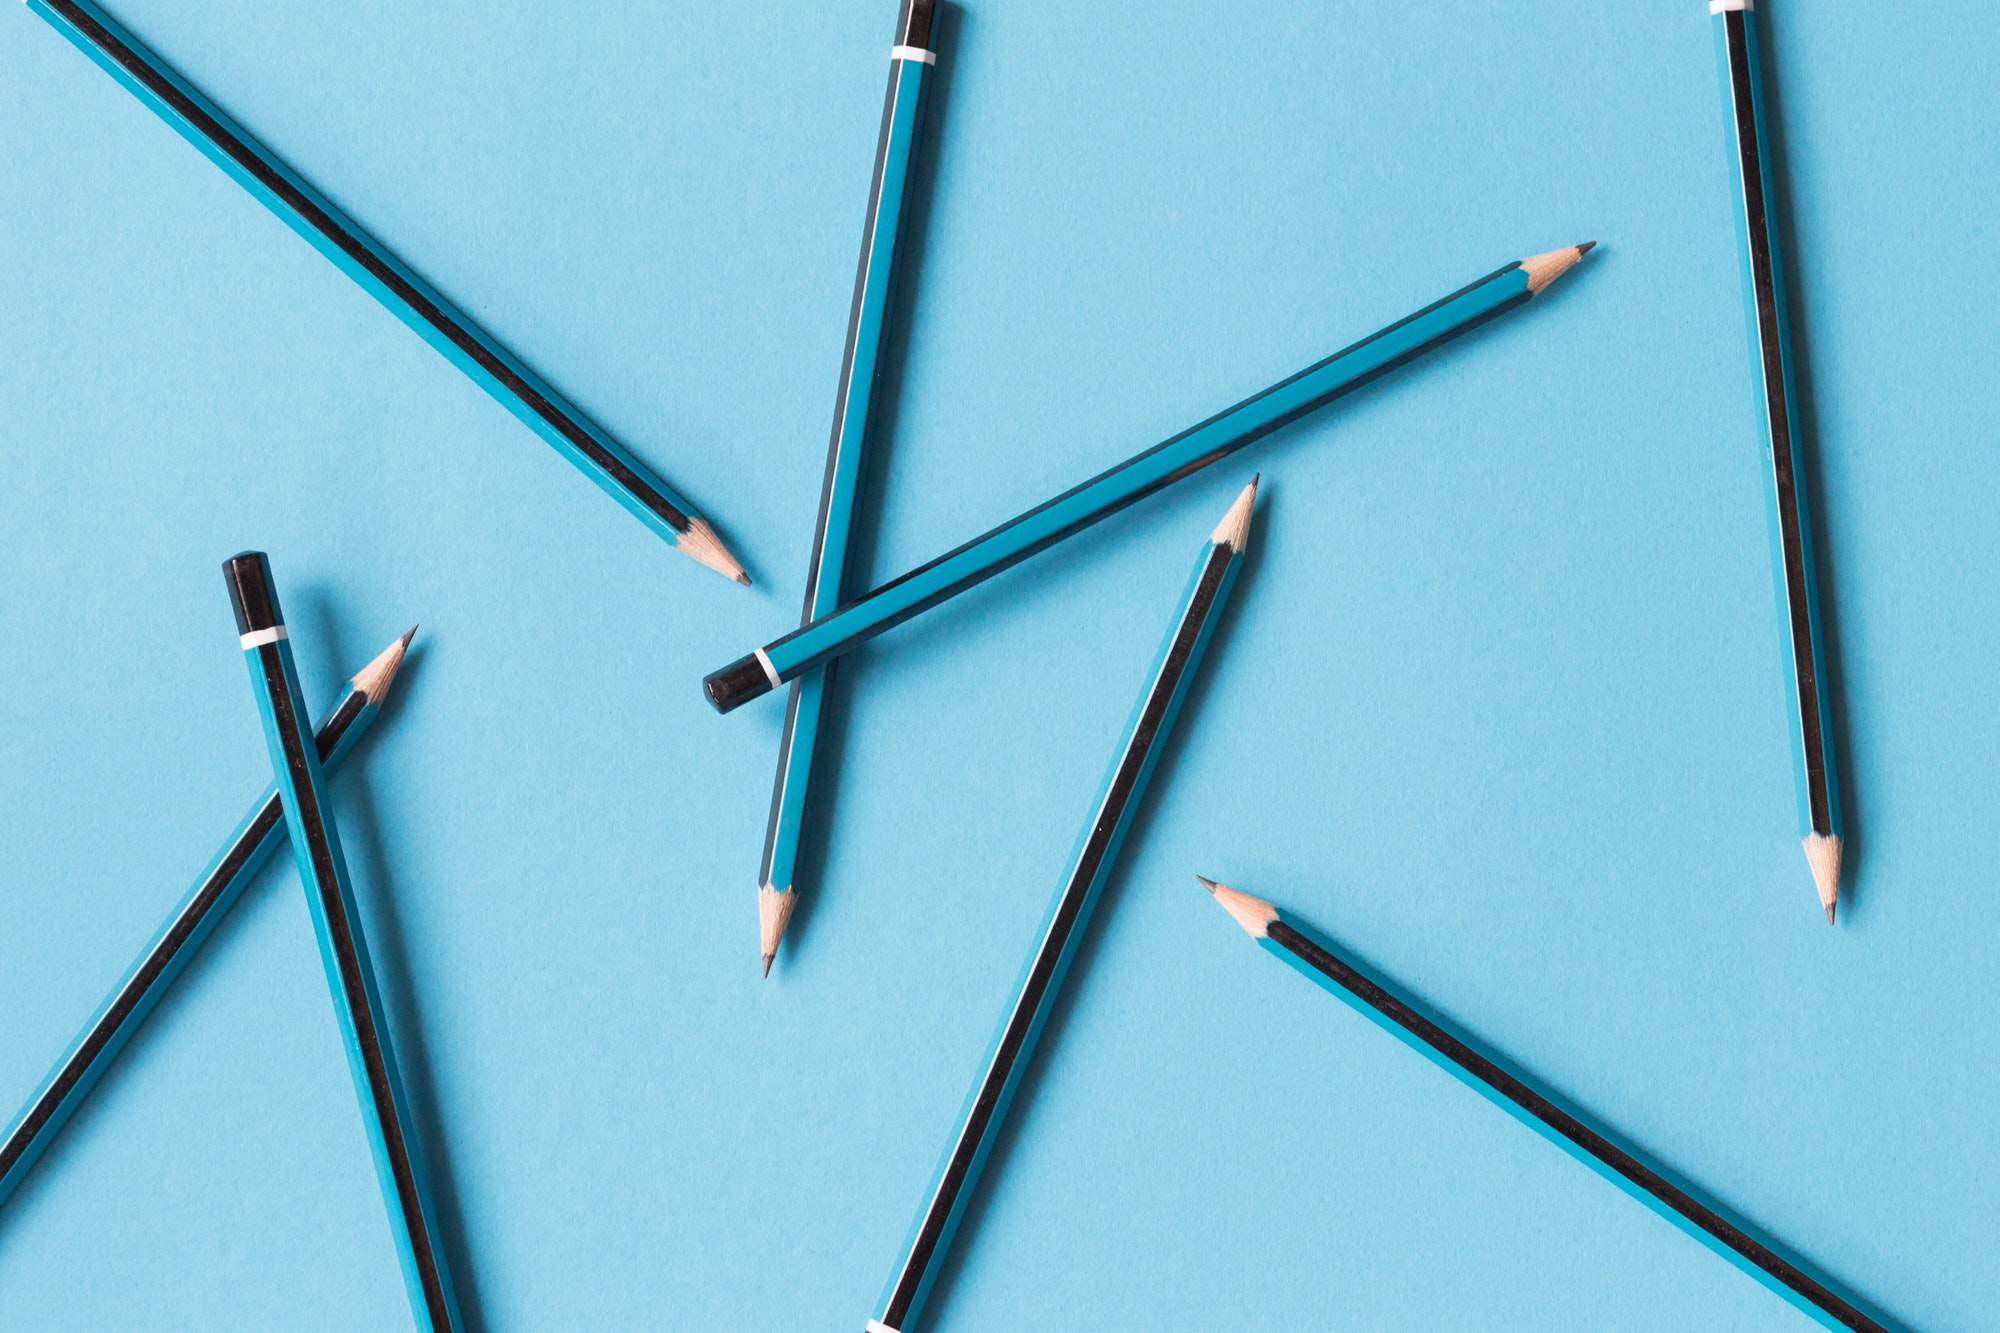 Blue and black pencils on blue background abstract